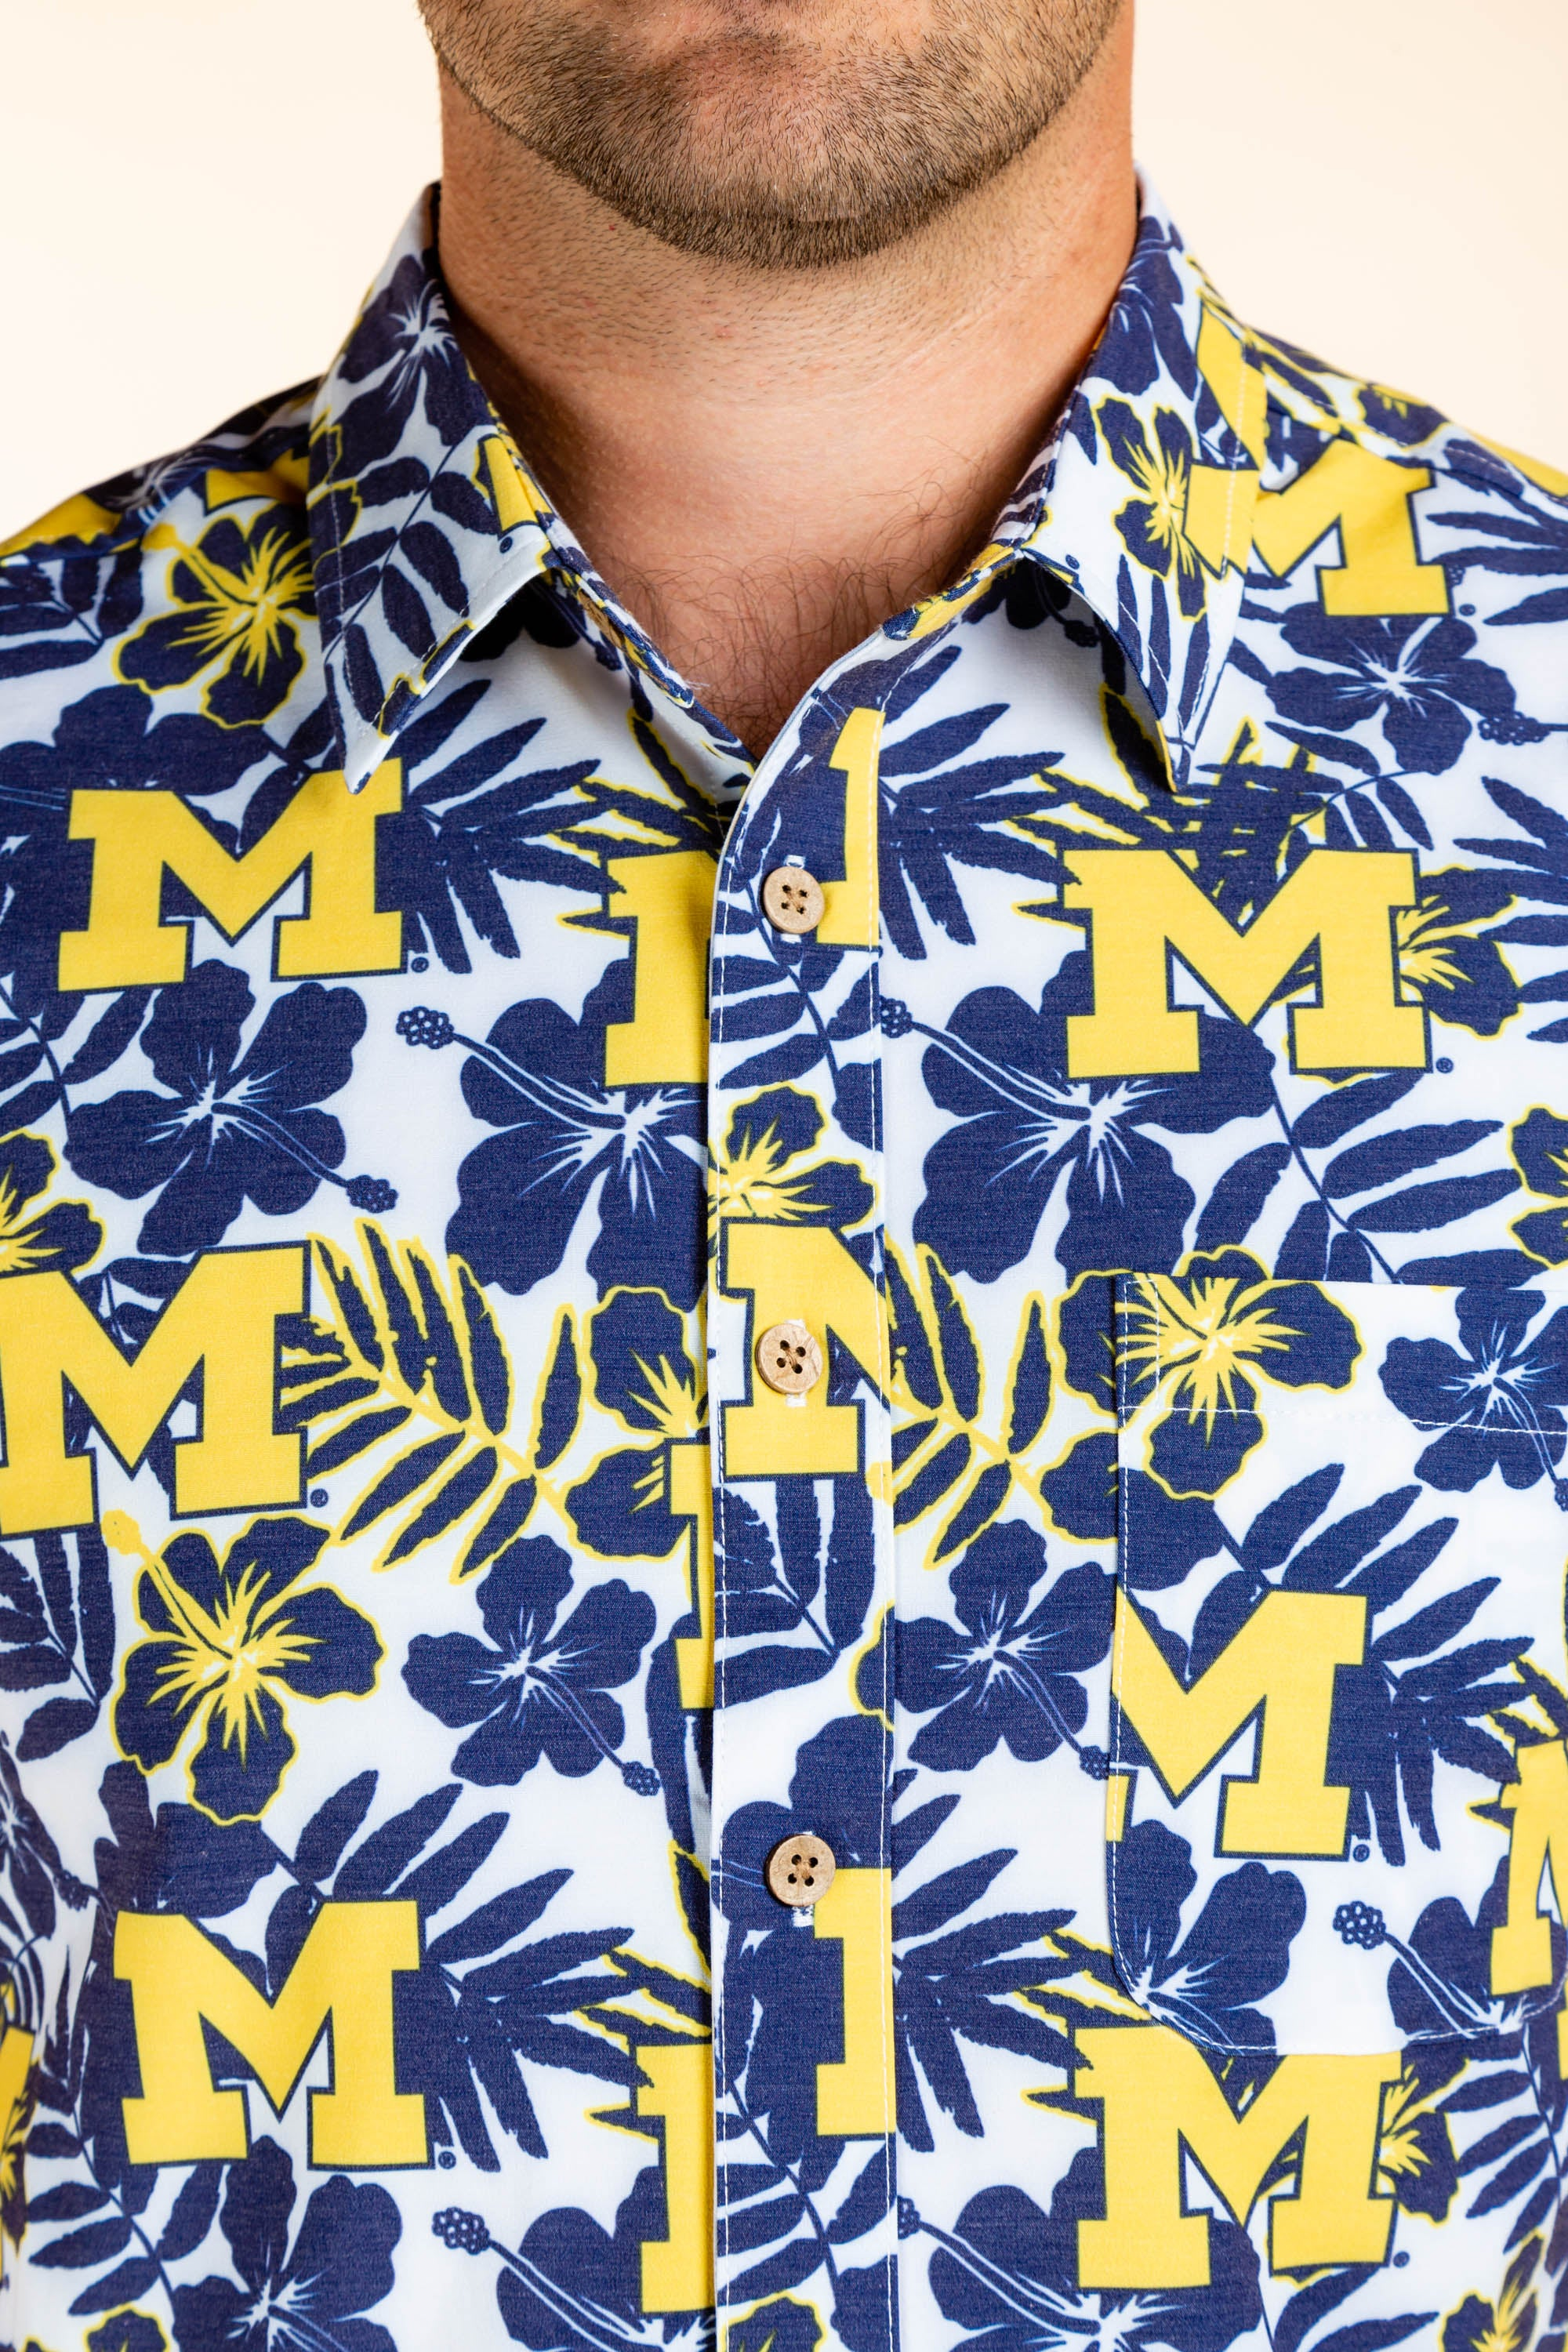 University of Michigan Game Day Shirt